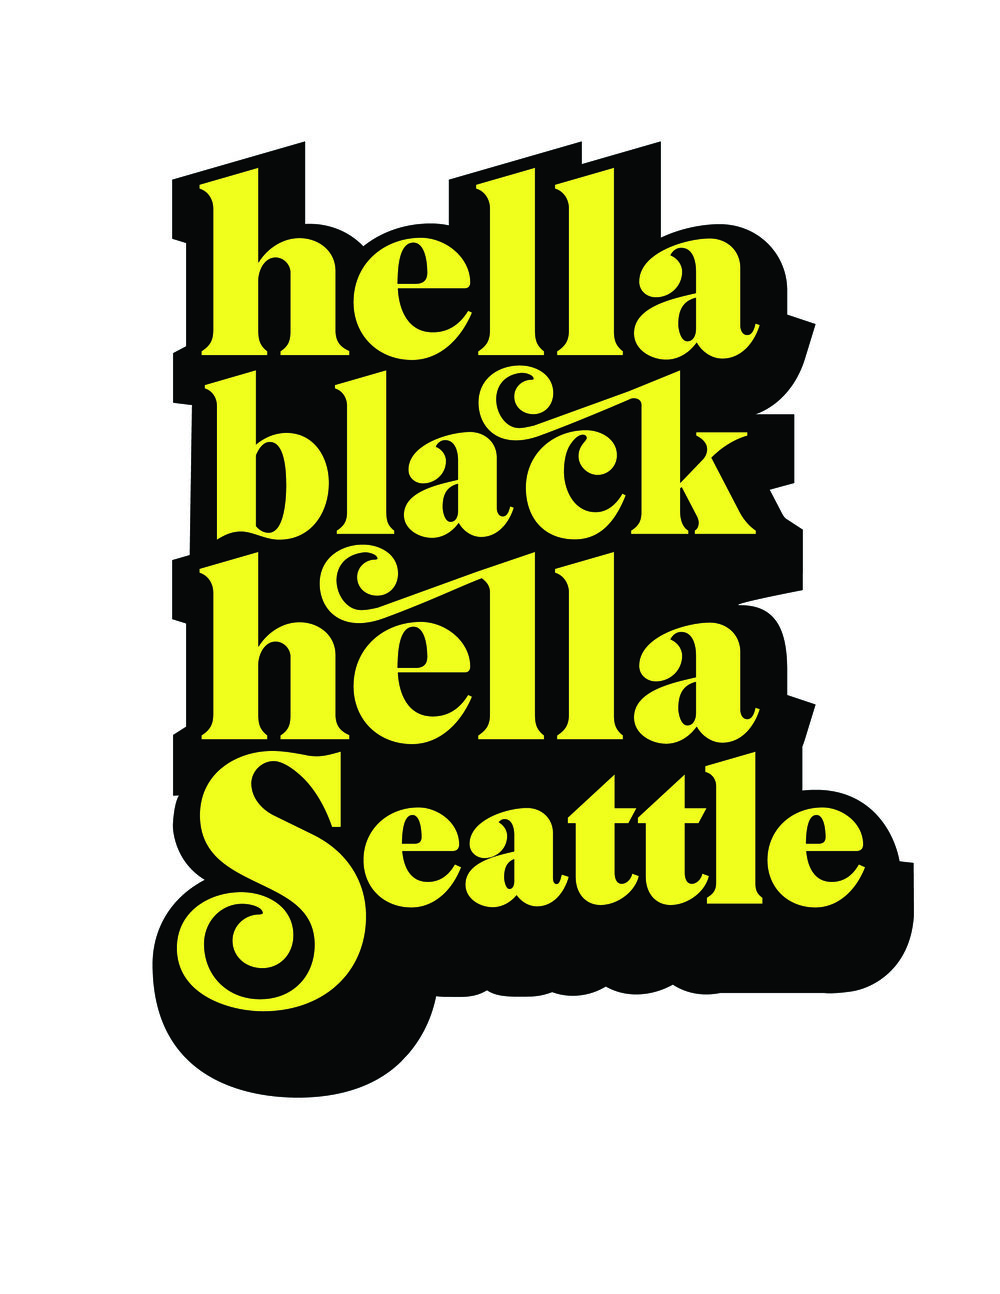 HellaBlackHellaSeattle Text Logo.jpg